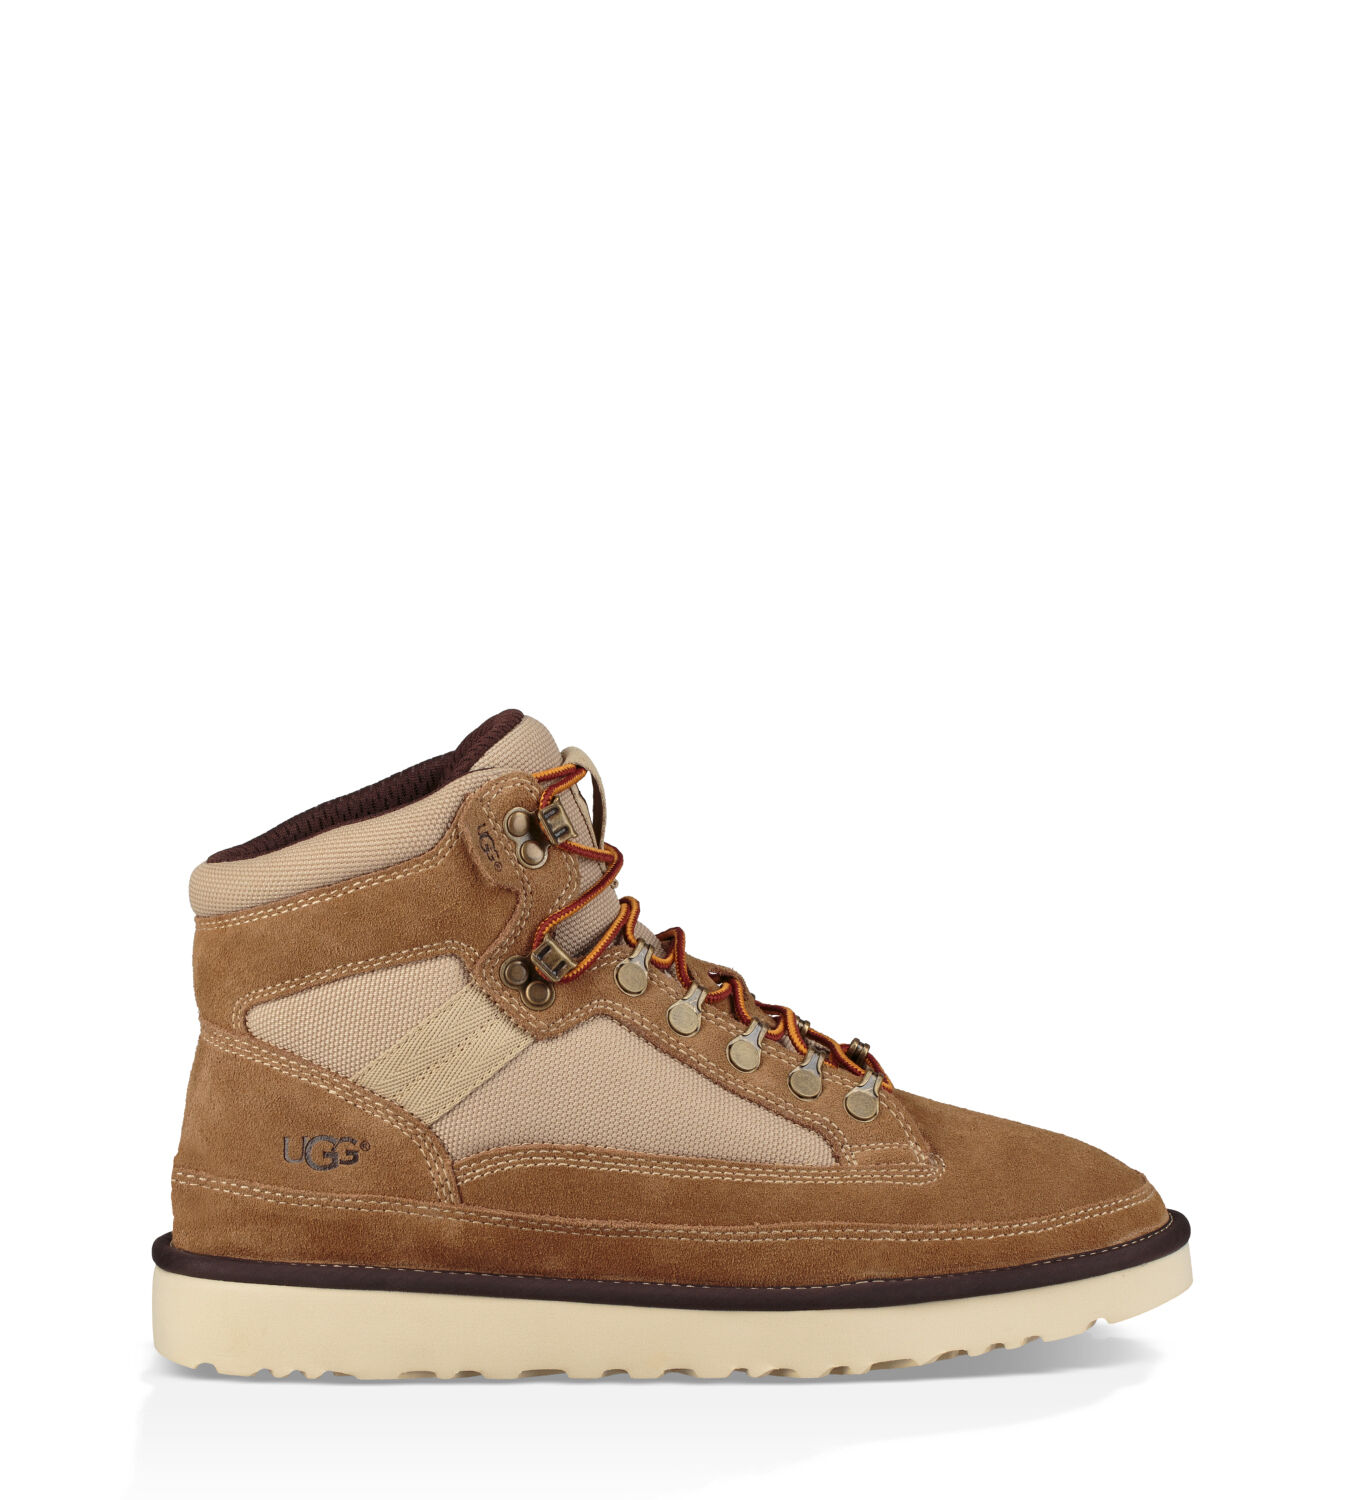 mens uggs sneakers nz